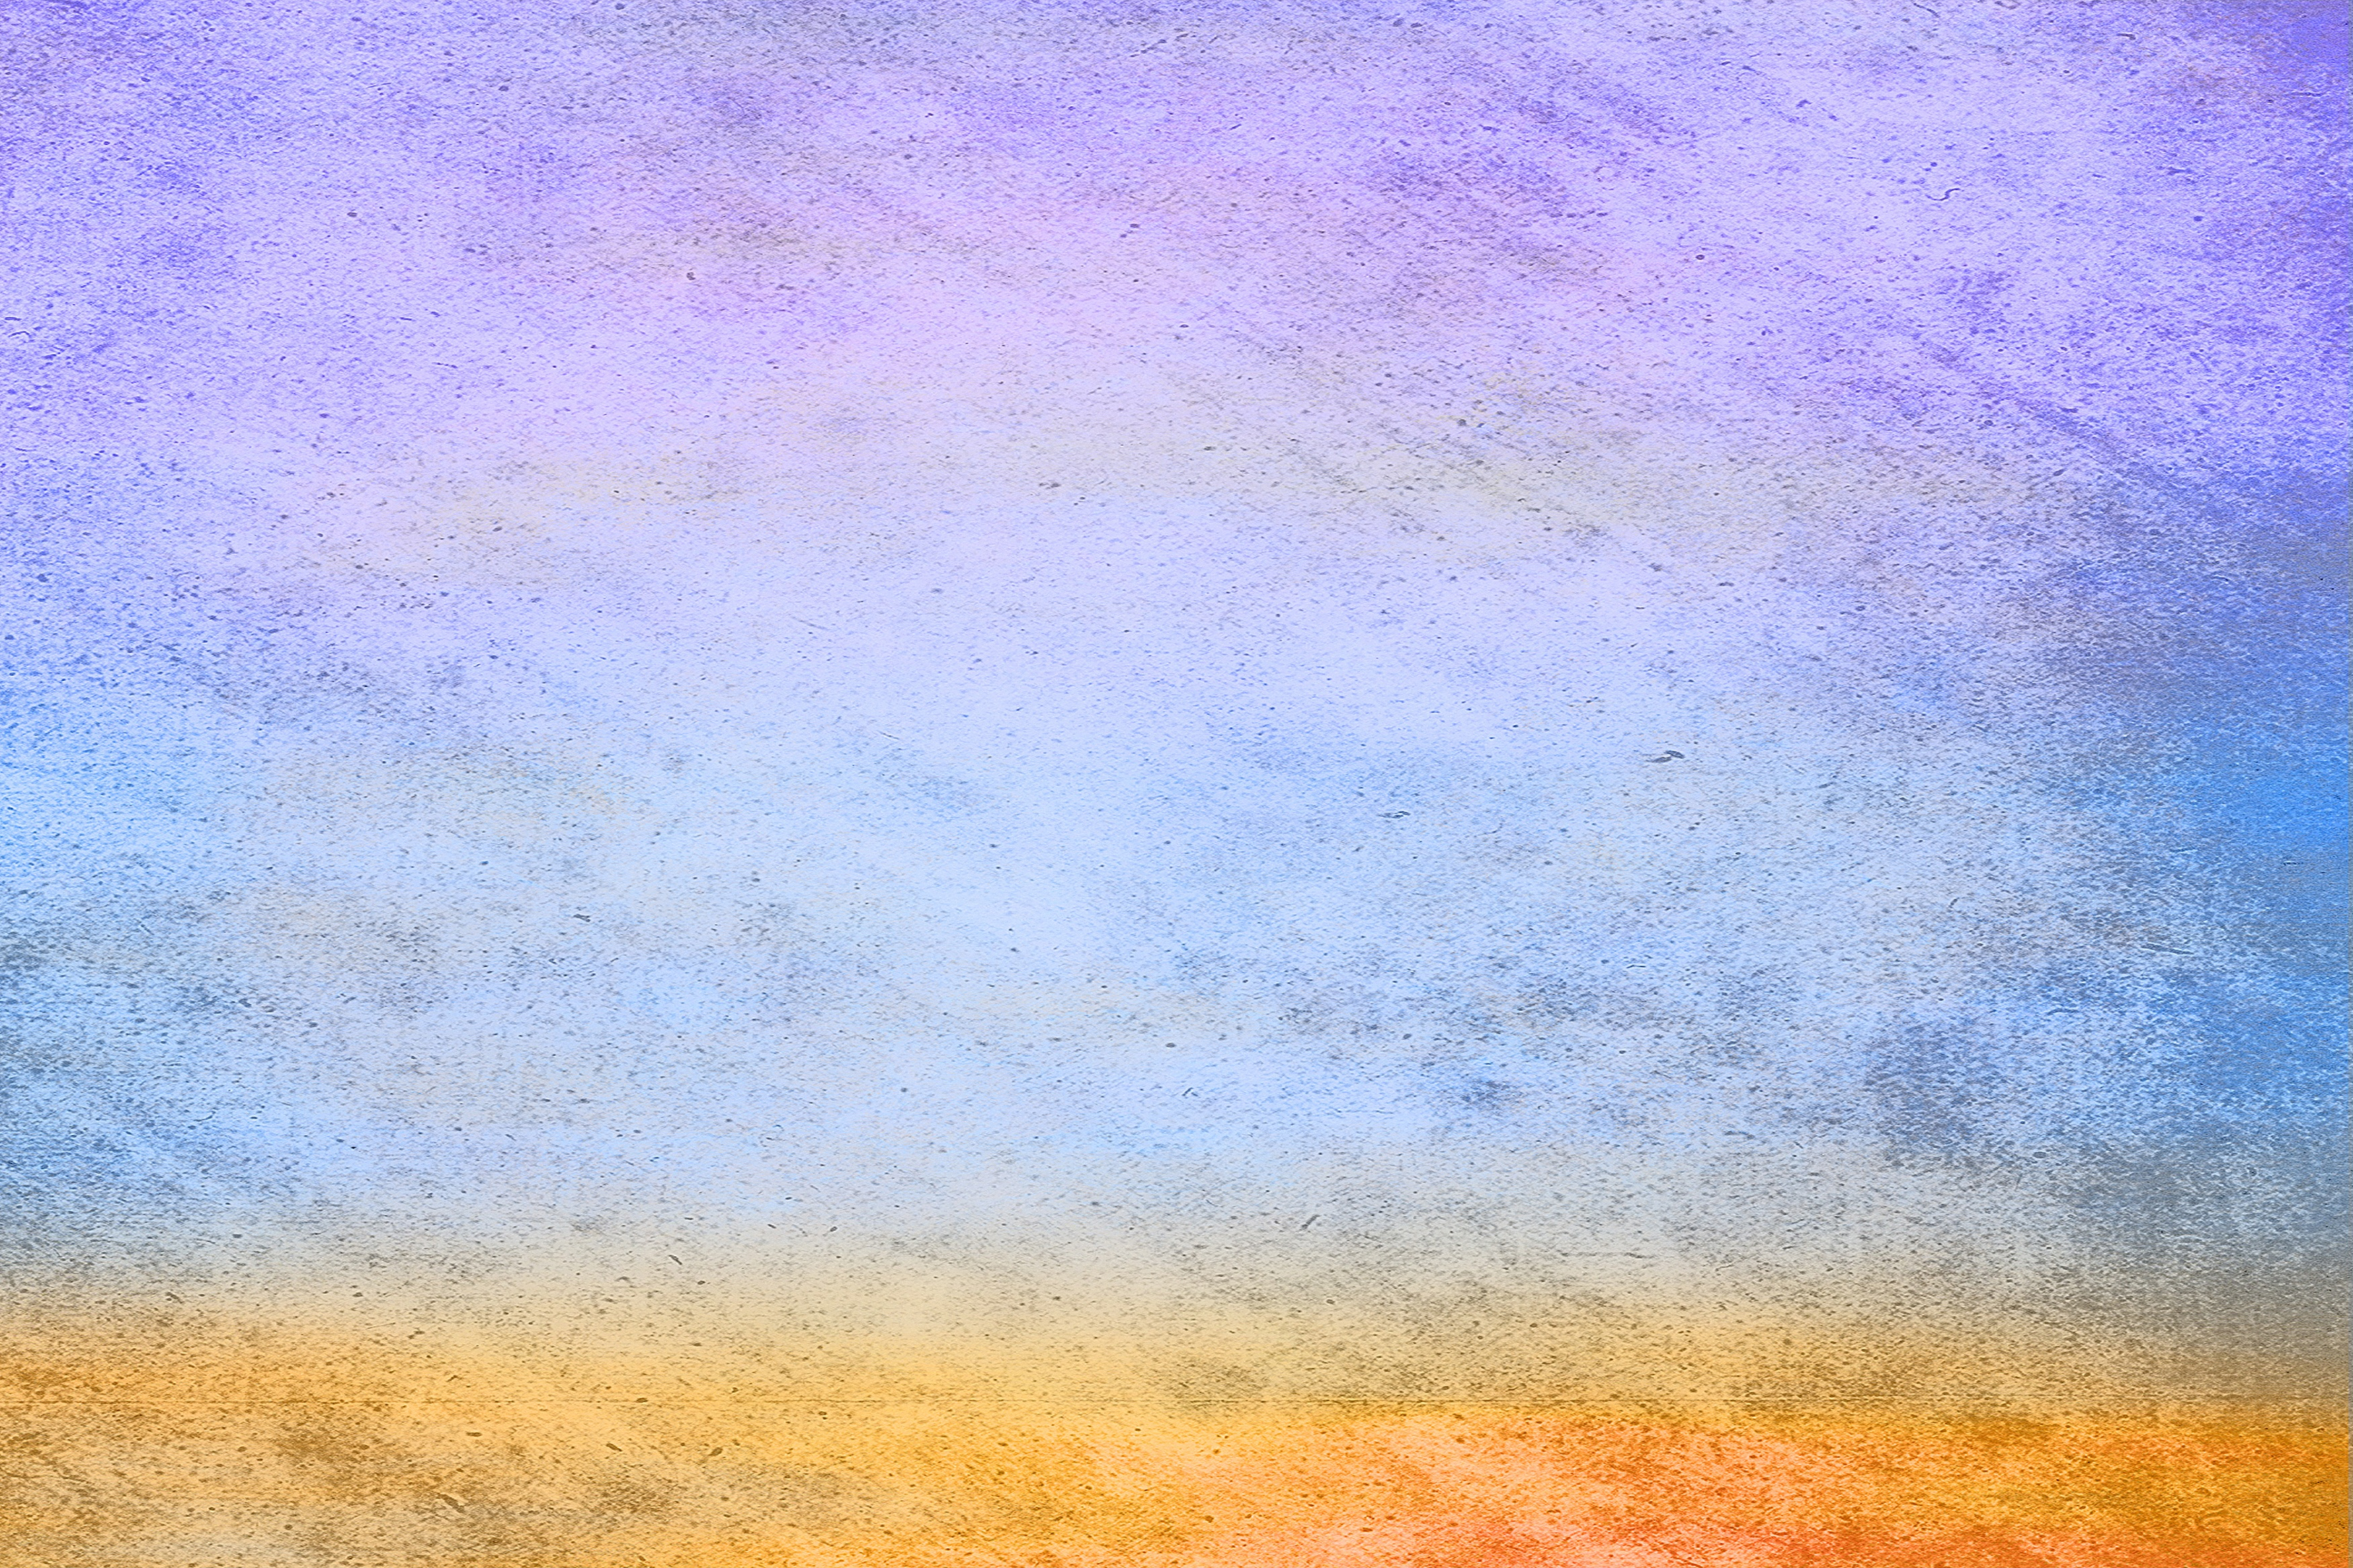 100054 download wallpaper Texture, Textures, Paint, Stripes, Streaks, Gradient, Pastel screensavers and pictures for free